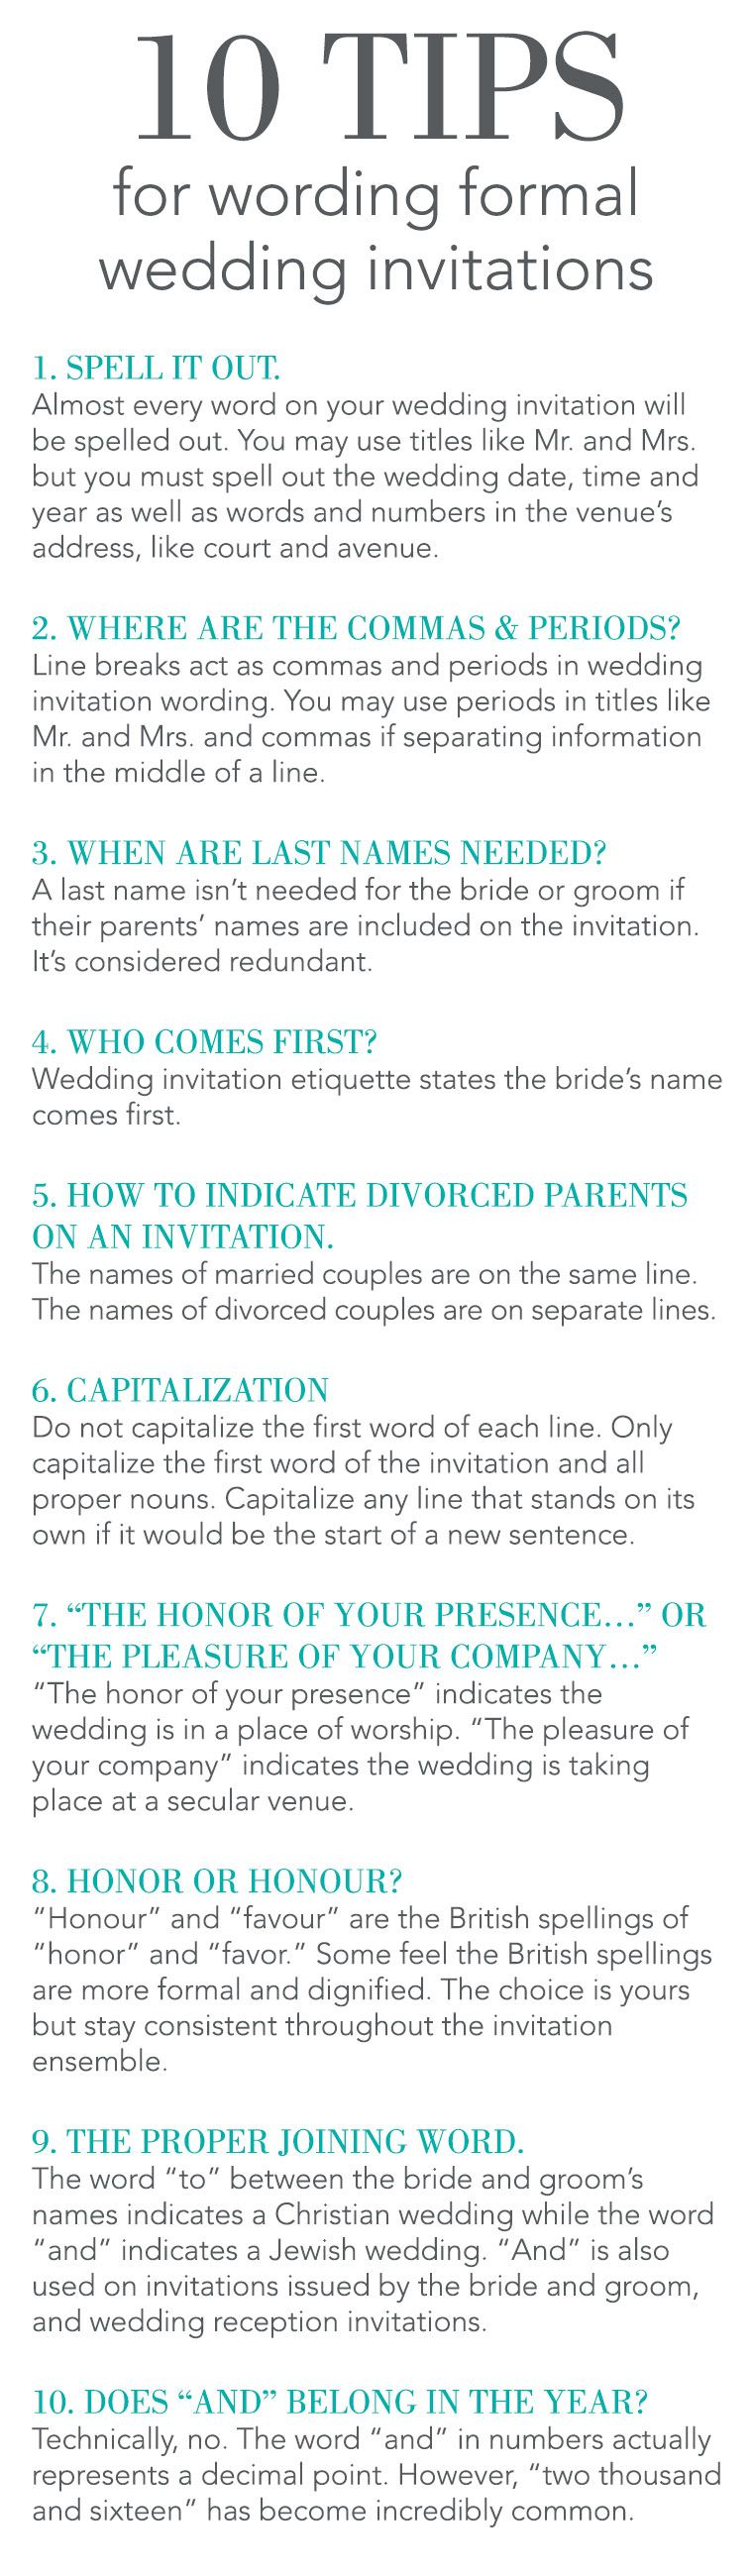 Hosting a formal wedding, but are uncertain how to word